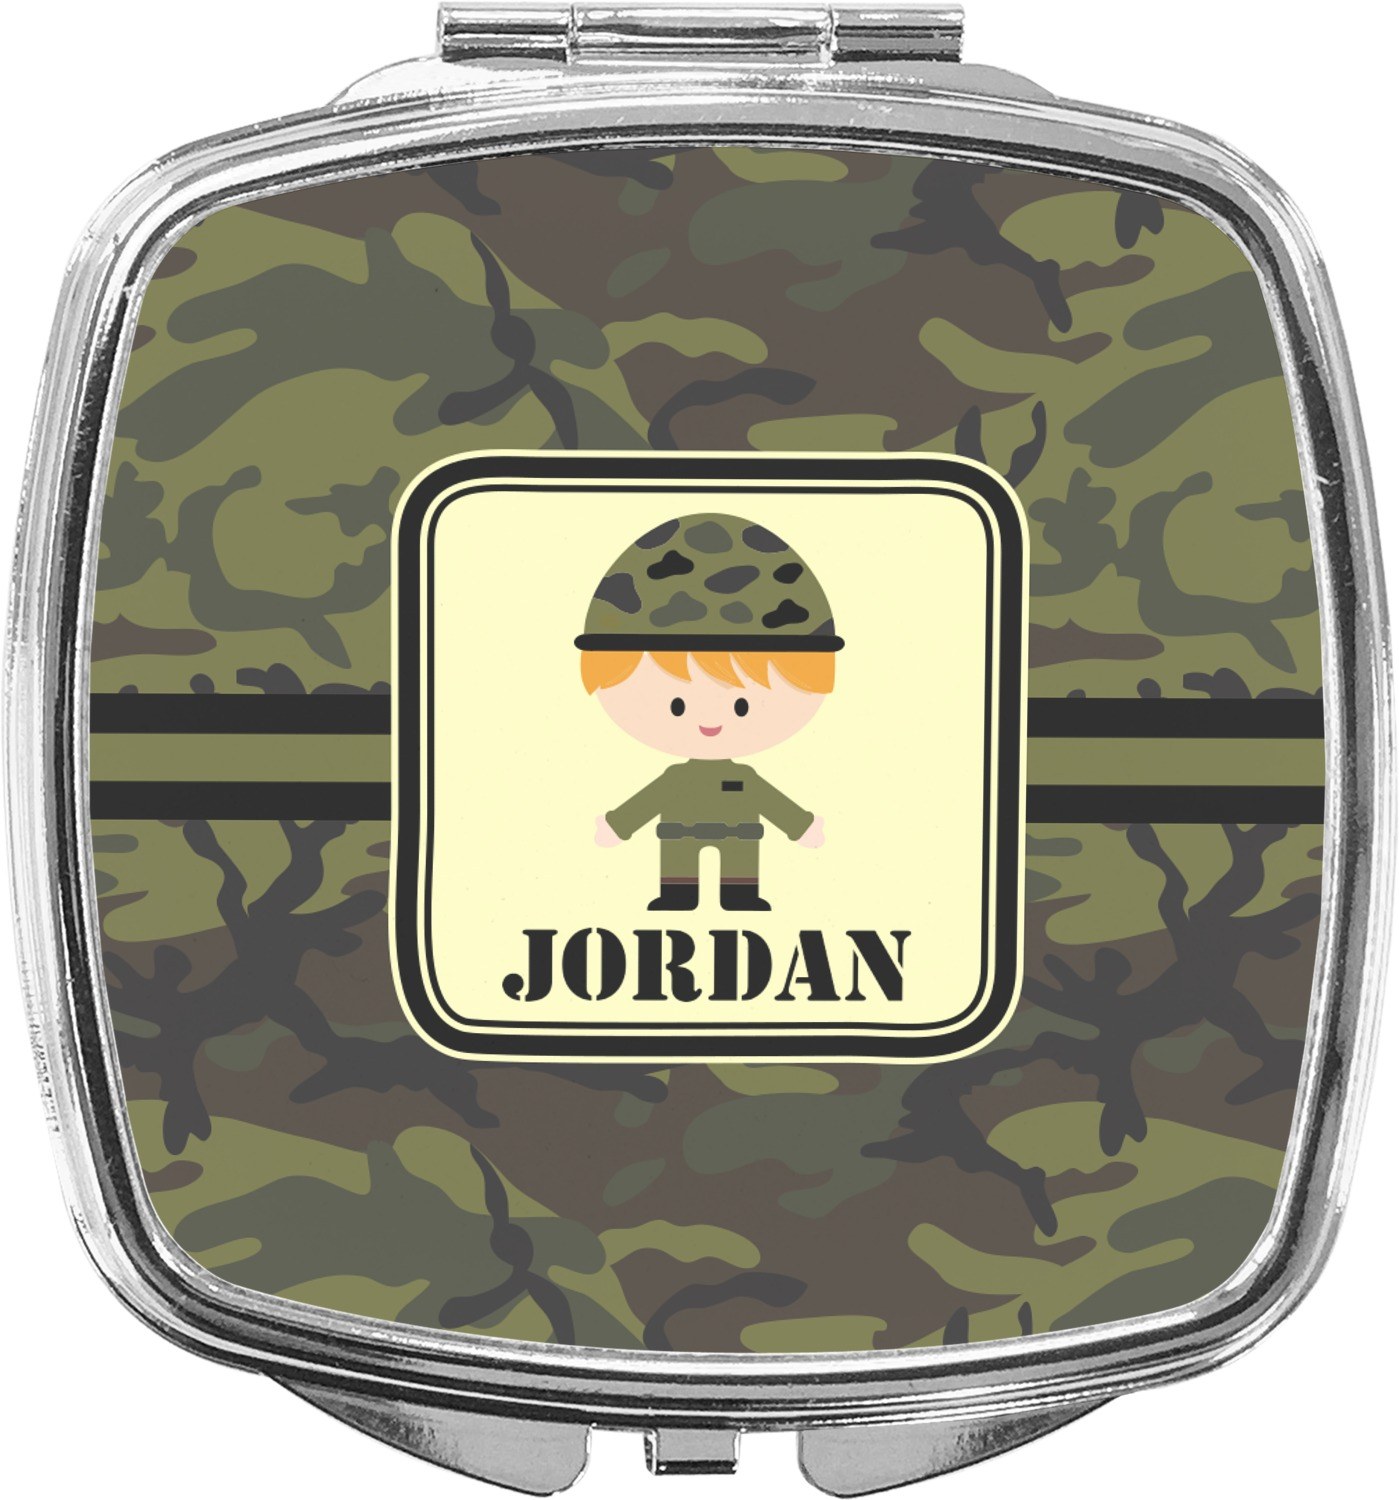 a1ab864a7a19 Green Camo Compact Makeup Mirror (Personalized) - YouCustomizeIt